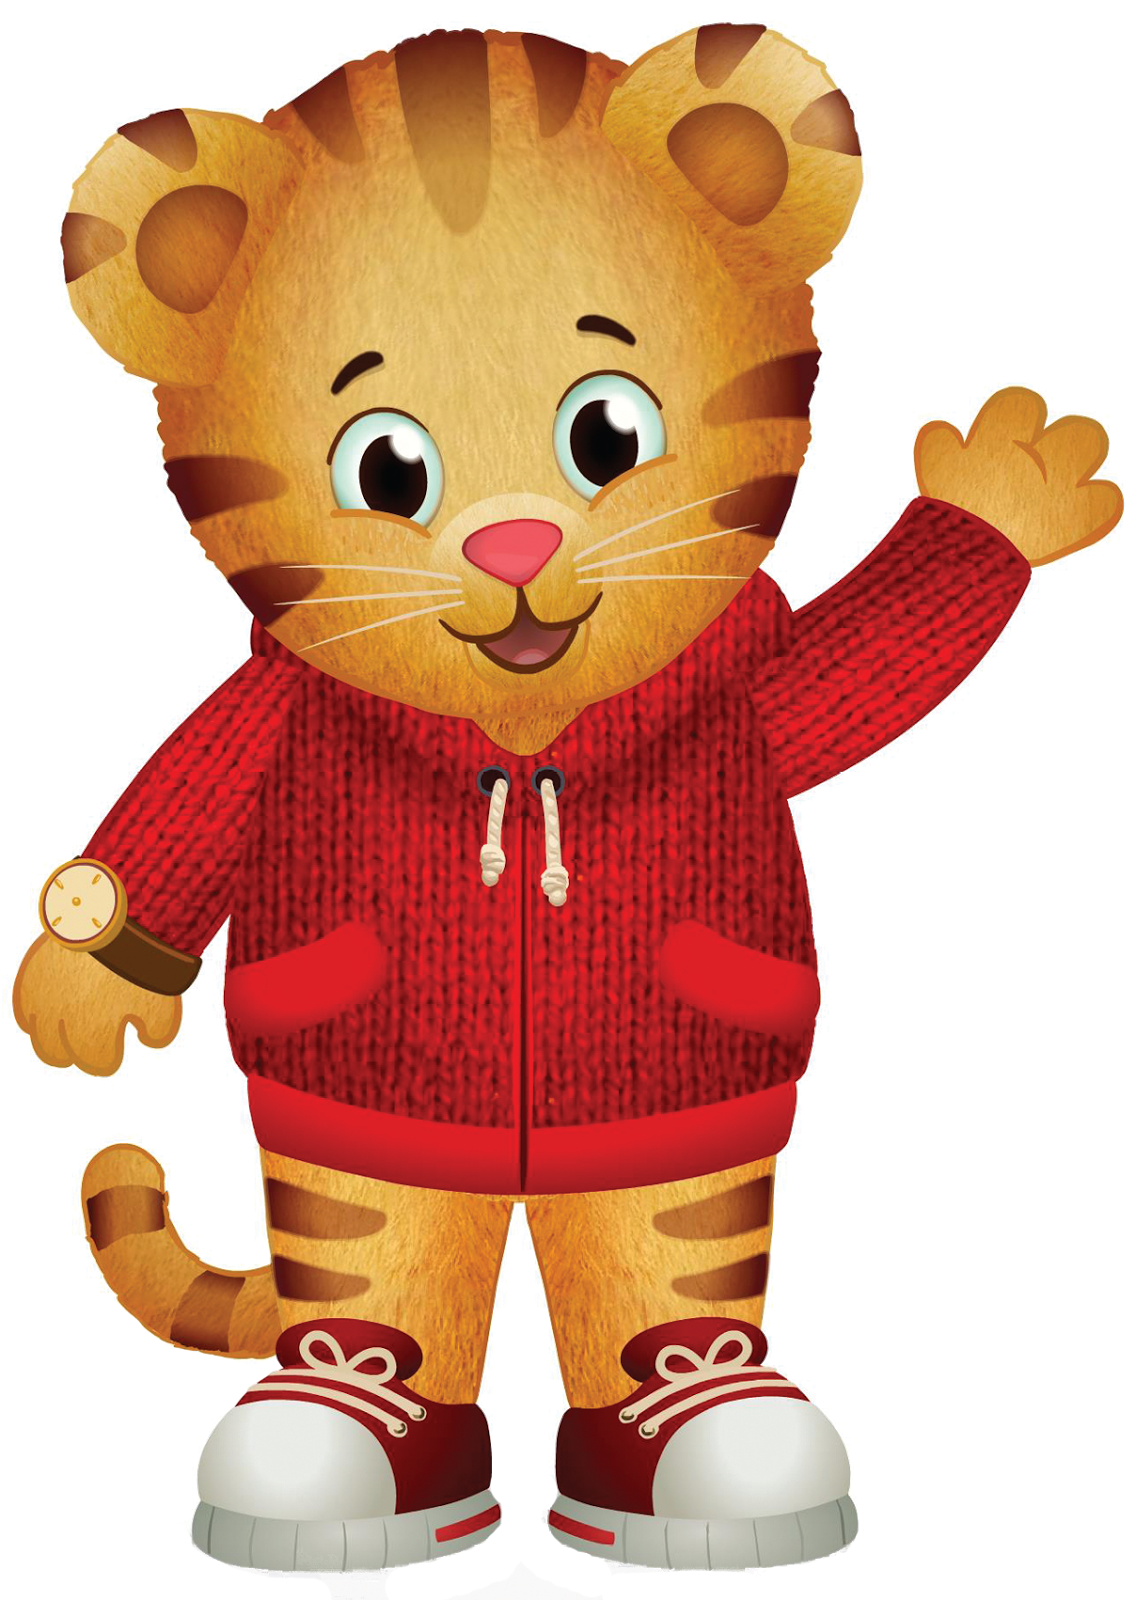 Daniel Tiger and Katerina Kittykat visit to celebrate being a caring neighbor